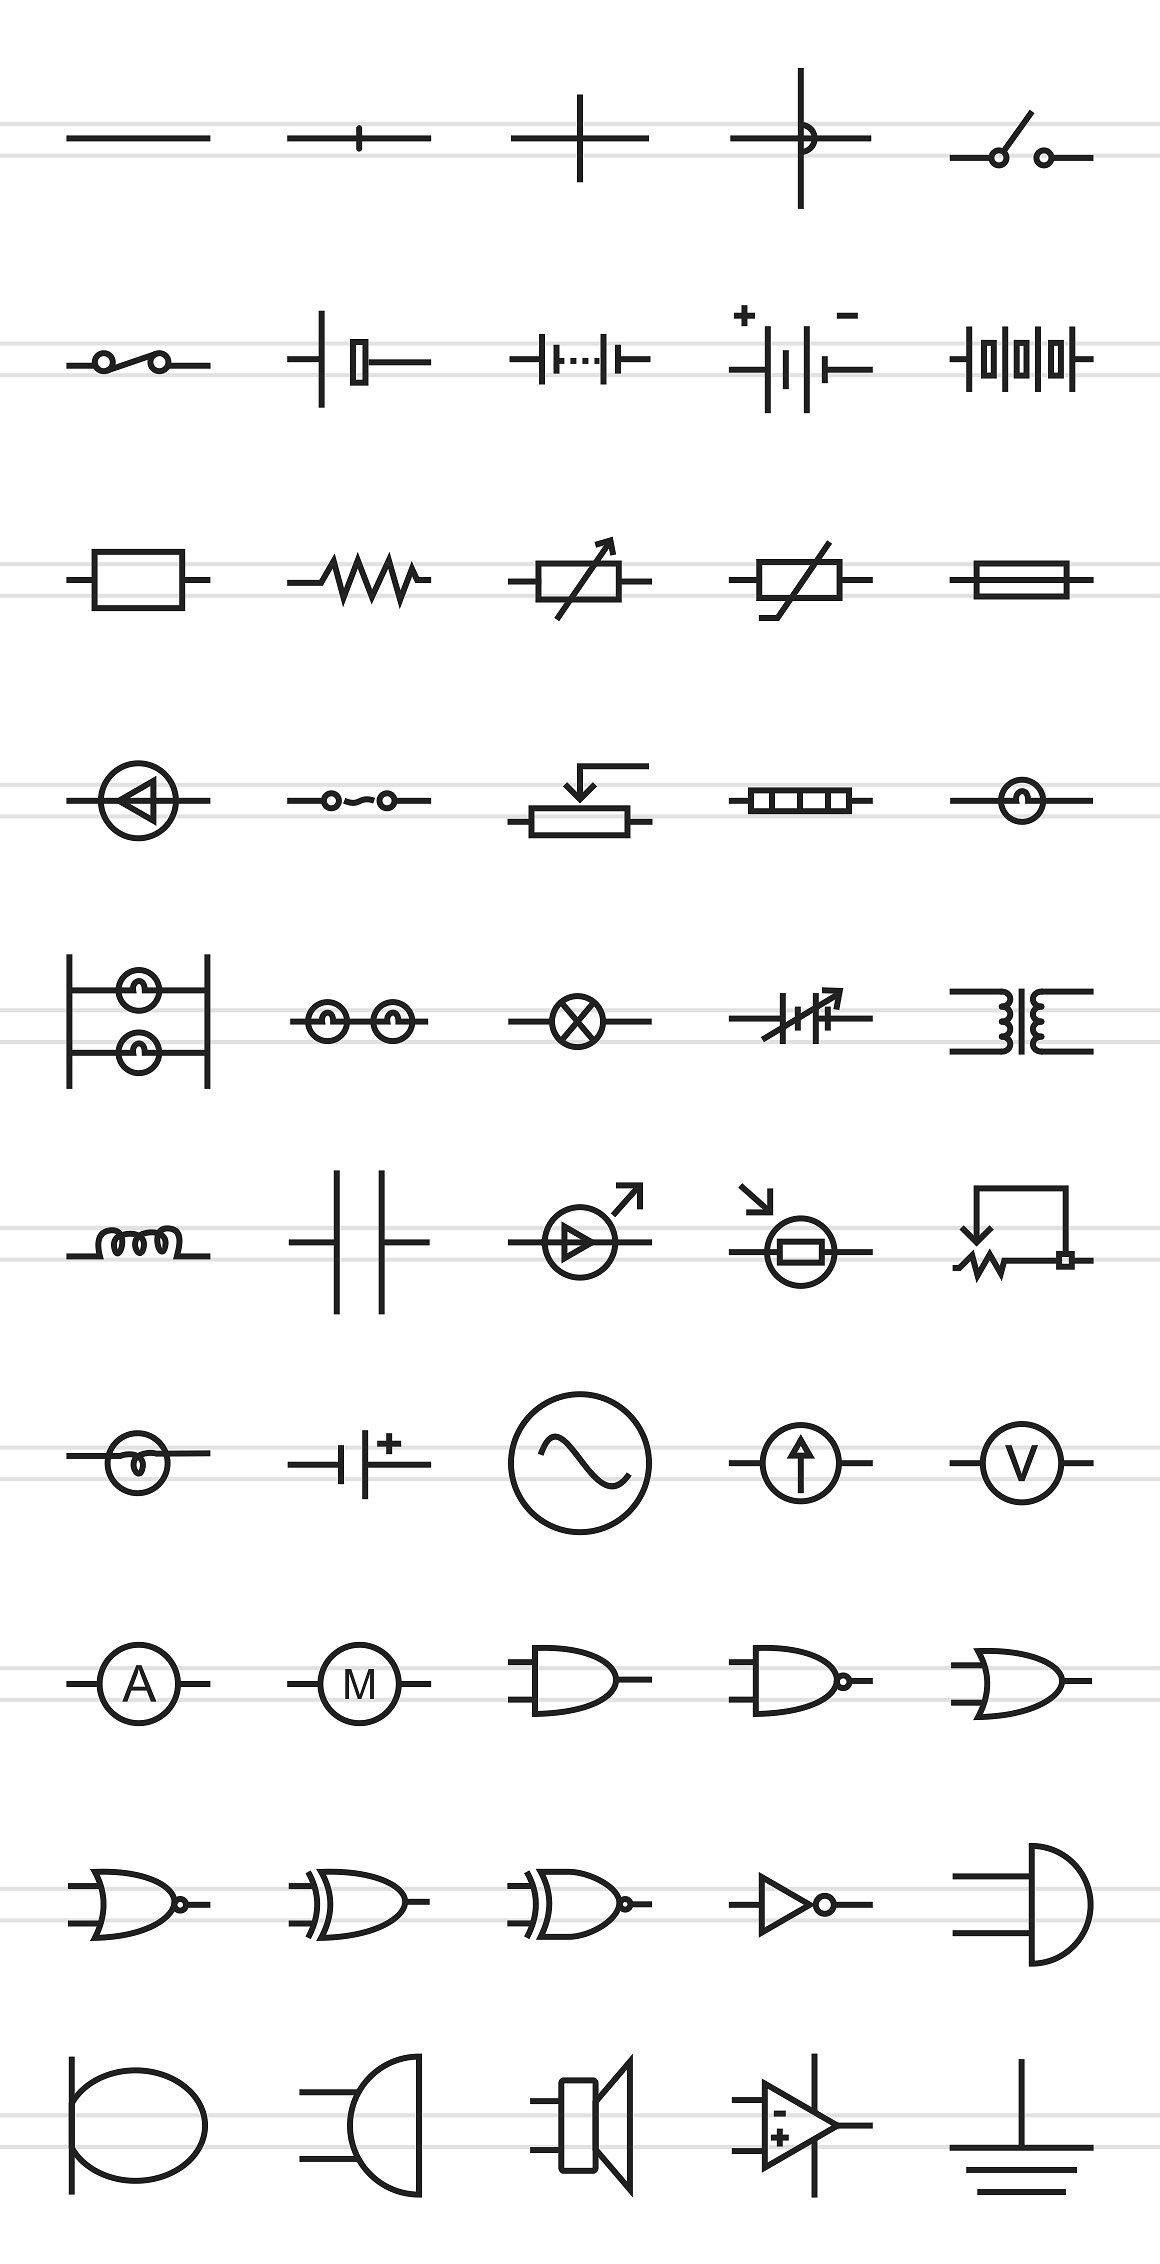 small resolution of 50 electric circuits line icons closed cell joined switch